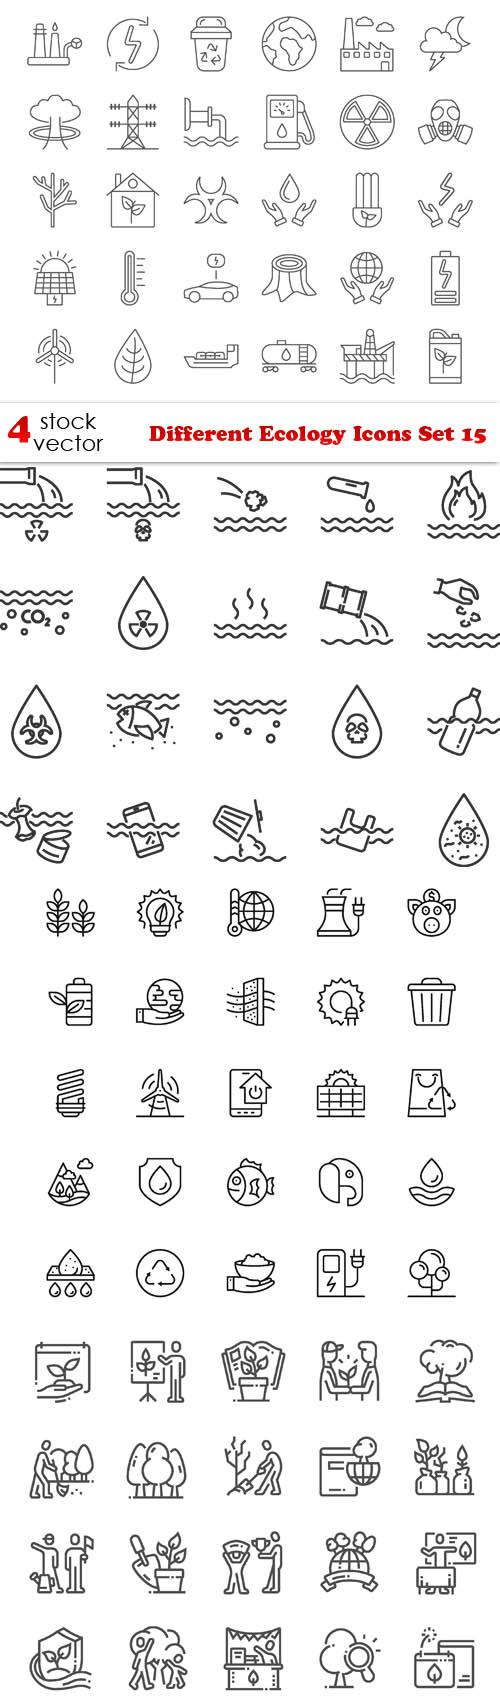 Different Ecology Icons Set 15